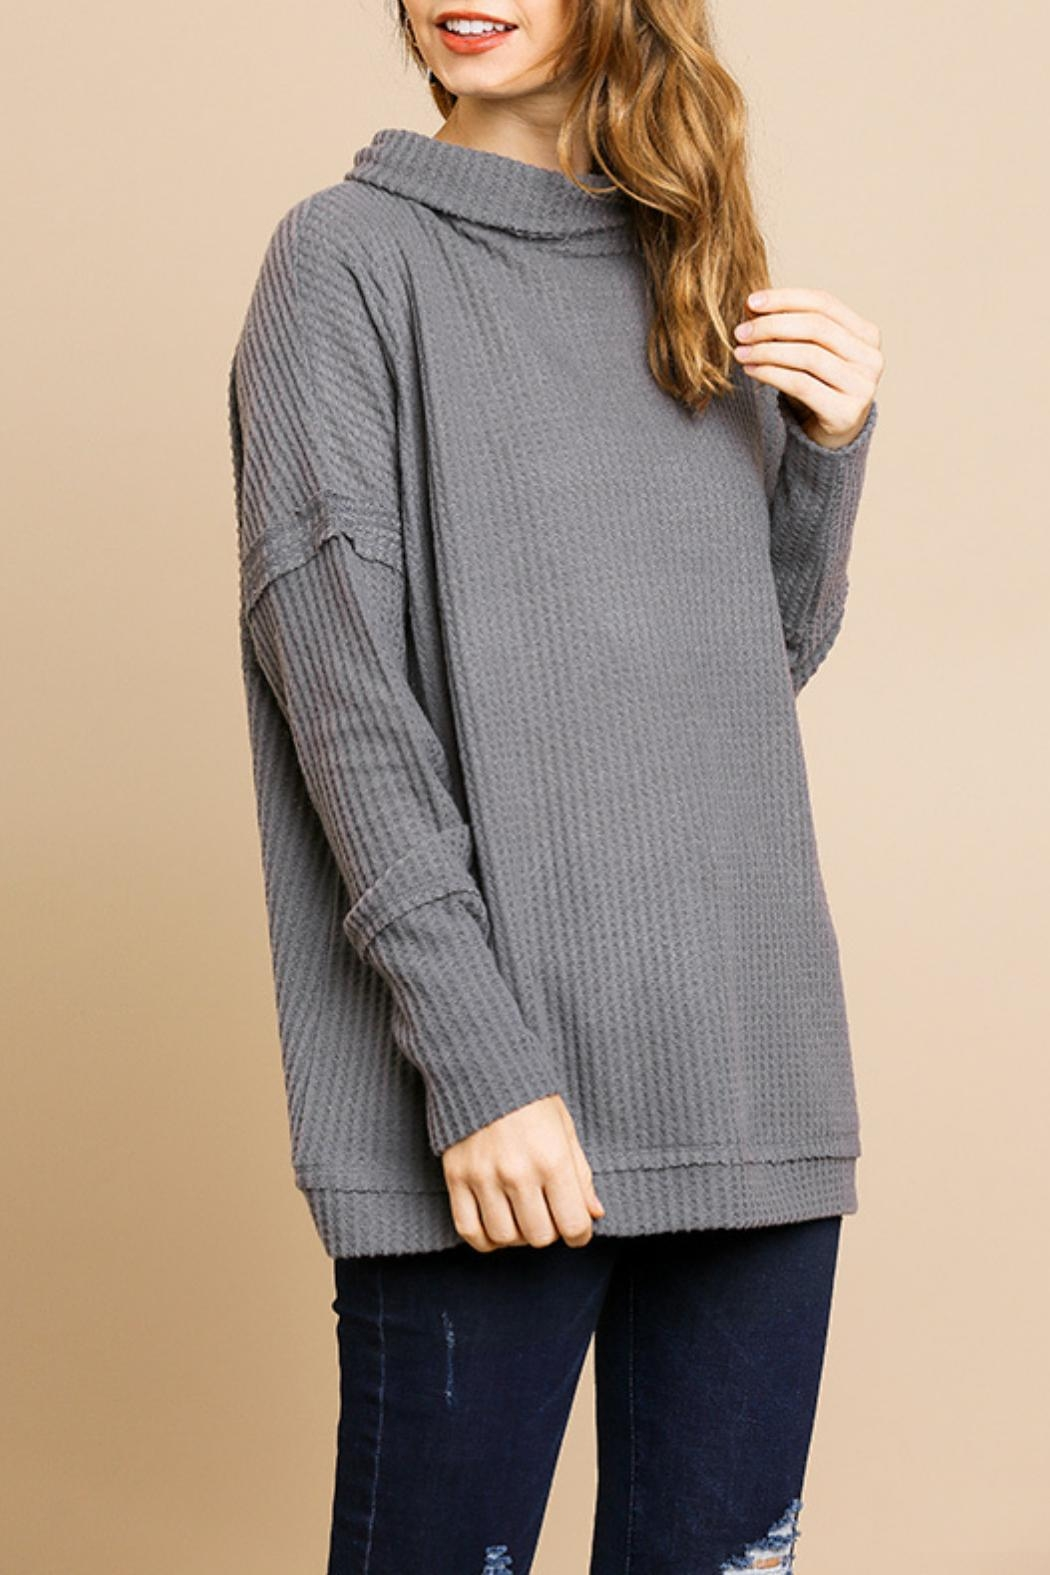 Umgee USA Charcoal Waffle-Knit Sweater - Front Cropped Image